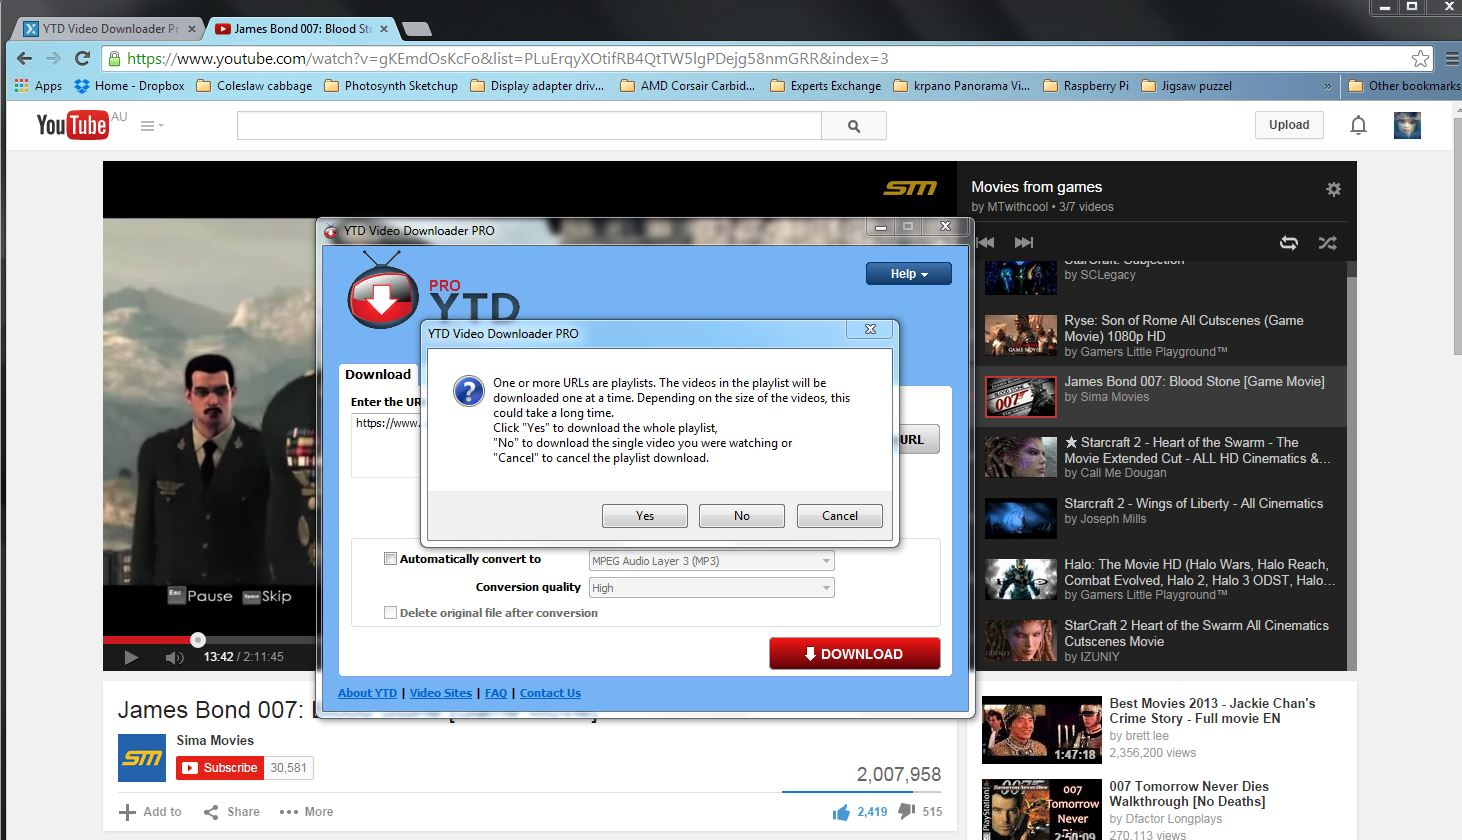 YTD Video Downloader Pro --- How to download and entire